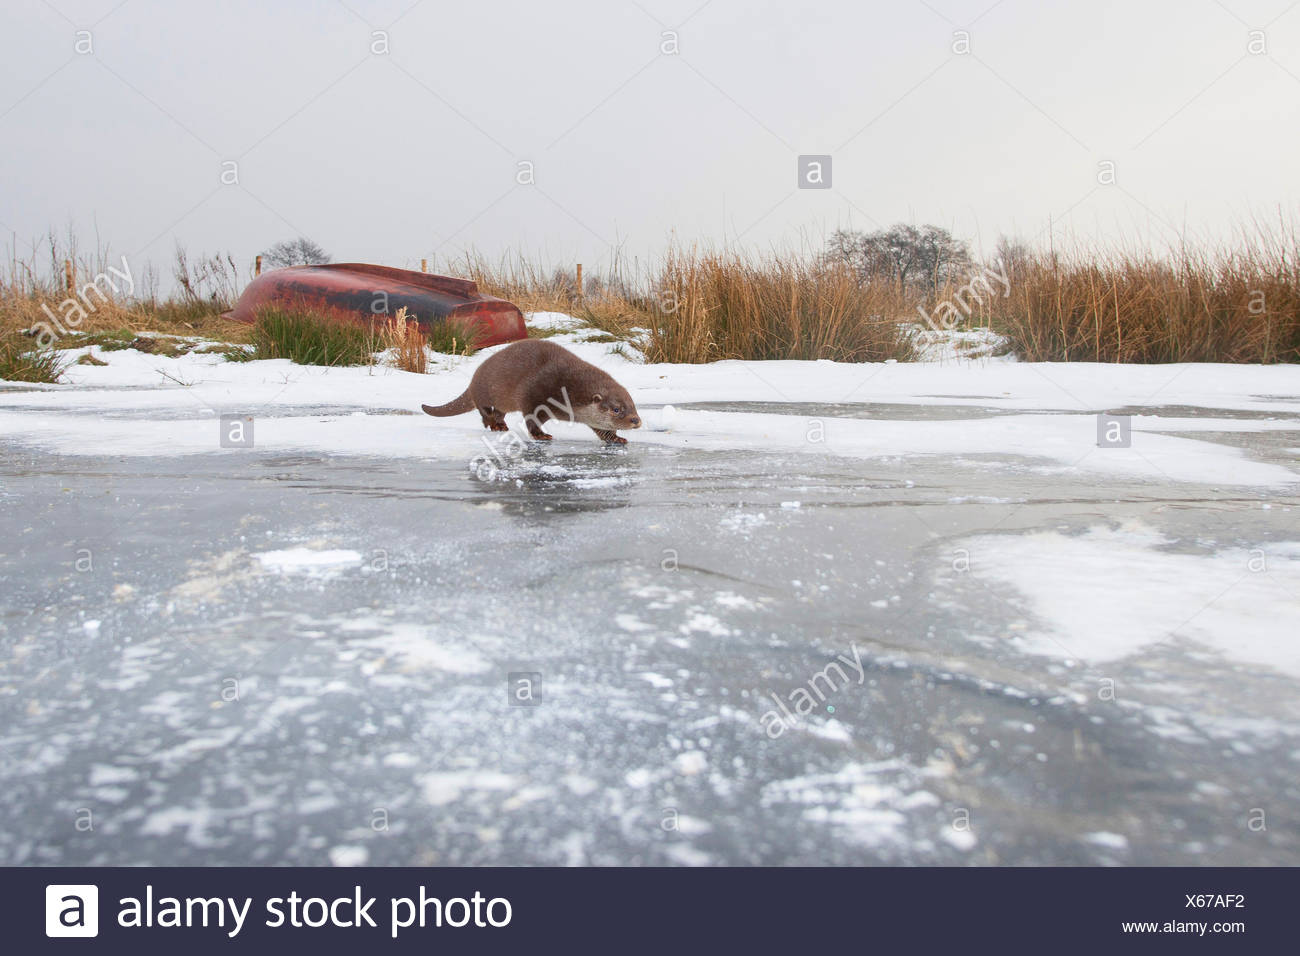 European river otter, European Otter, Eurasian Otter (Lutra lutra), female in the snow on a frozen up ice sheet, Germany - Stock Image